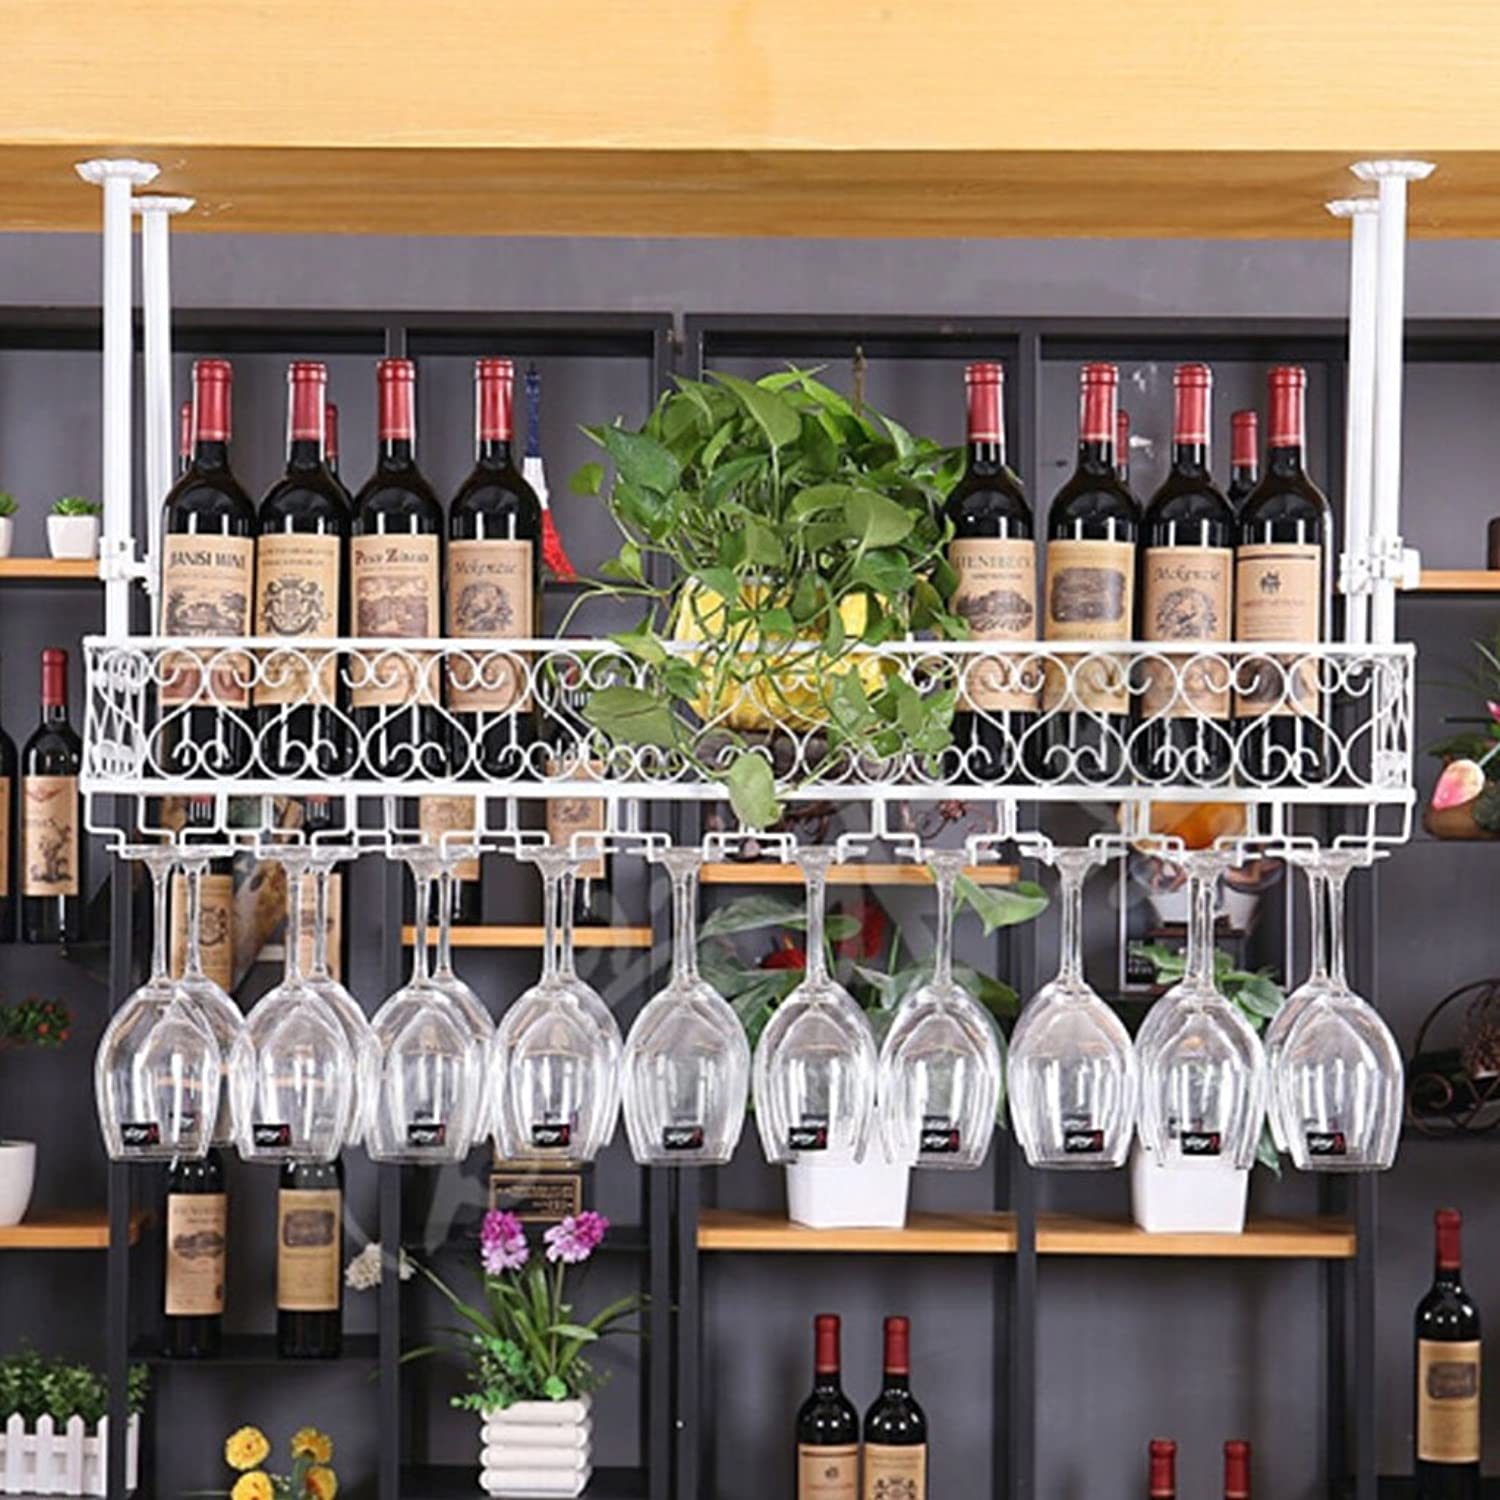 hasta 60% de descuento Wine rack Lei ZE Jun UK- Barra Barra Barra para Colgar Estante para Vino Estante para exhibición de Vino de Hierro Forjado Estante de exhibición para Vino Estante de Copa Inverdeida Botelleros  solo para ti